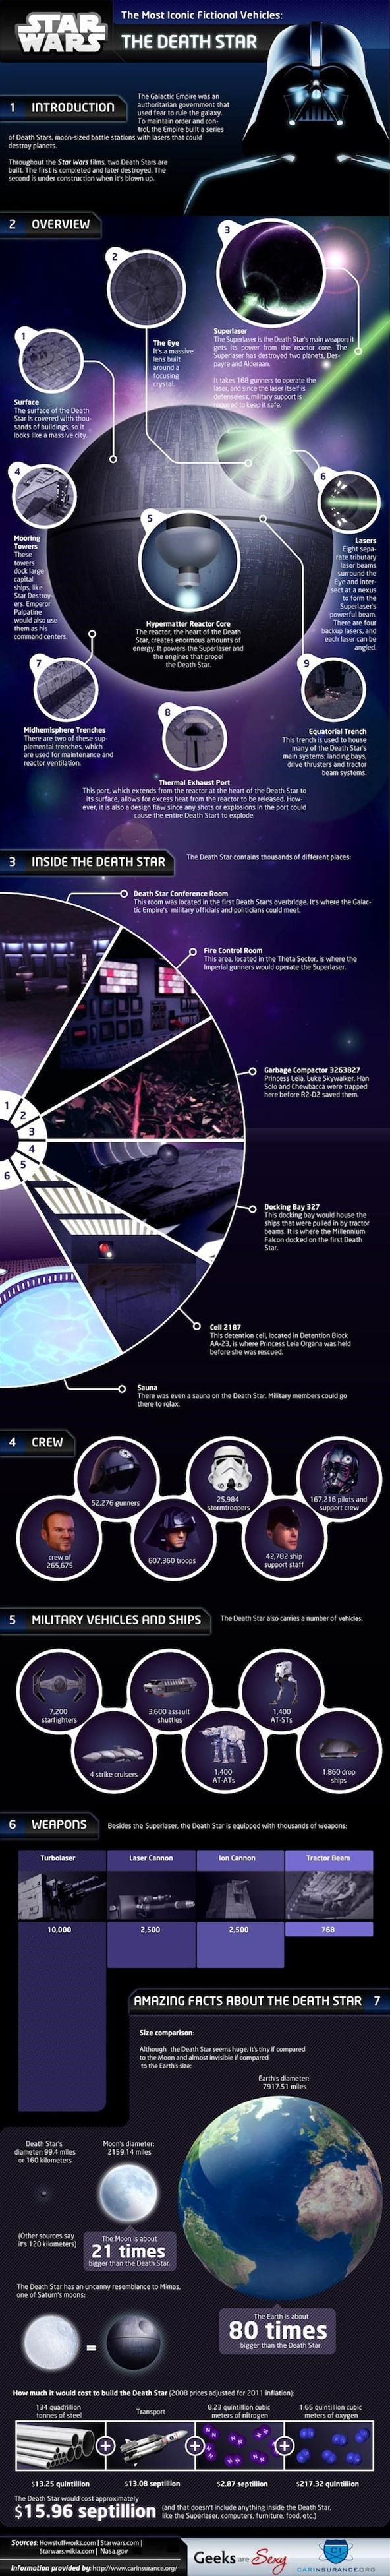 Darth Vadar's Death Star Military Info Graphic